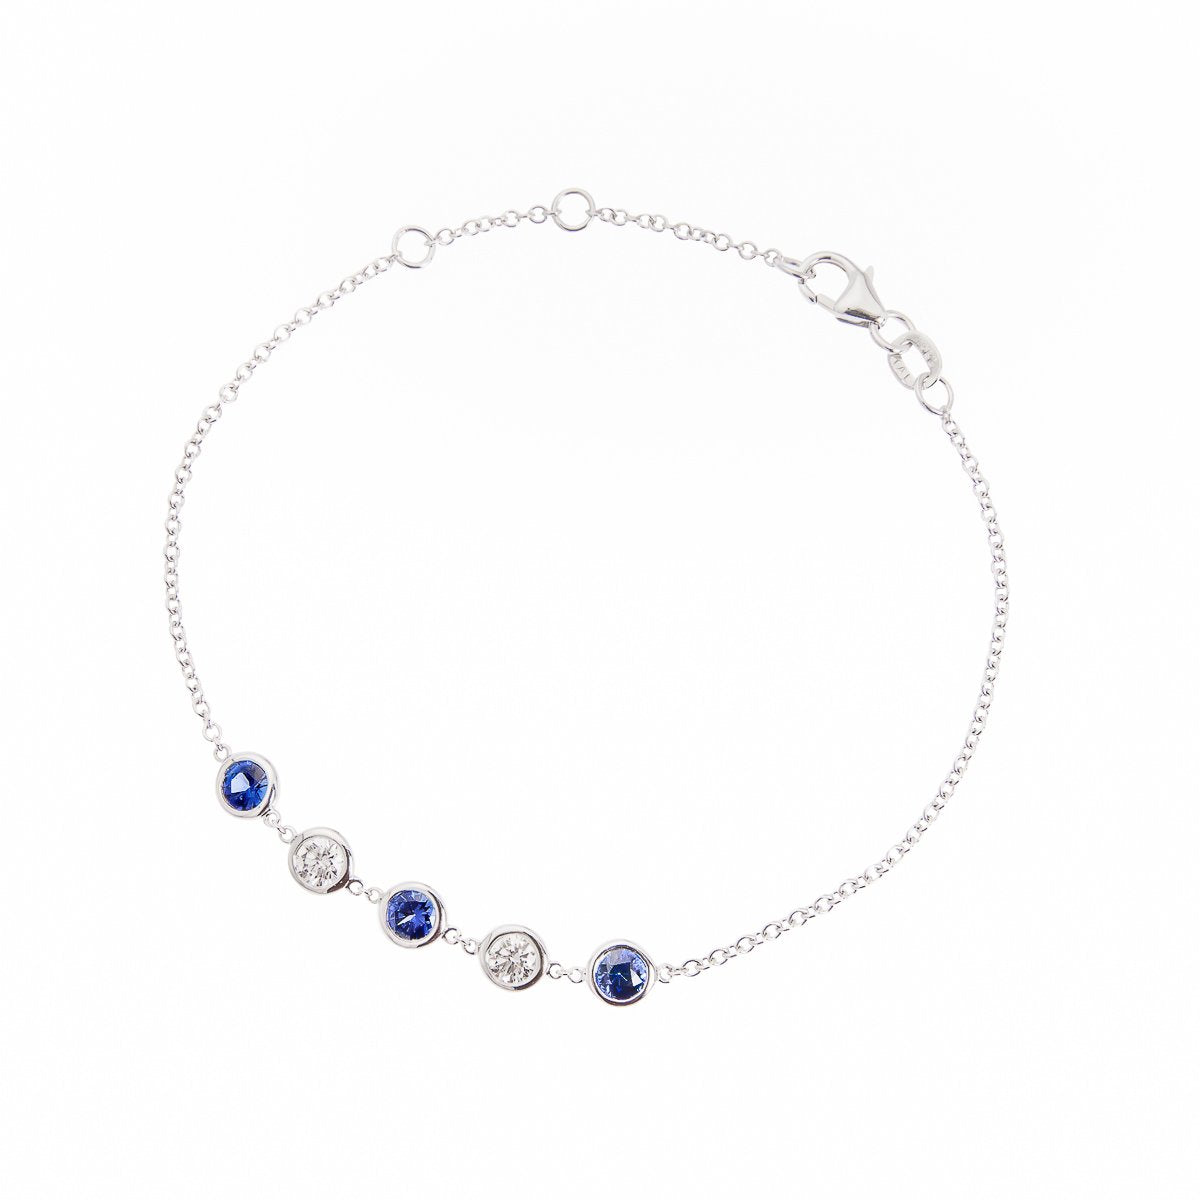 Sabel Collection 18K White Gold Round Sapphire and Round Diamond Station Bracelet